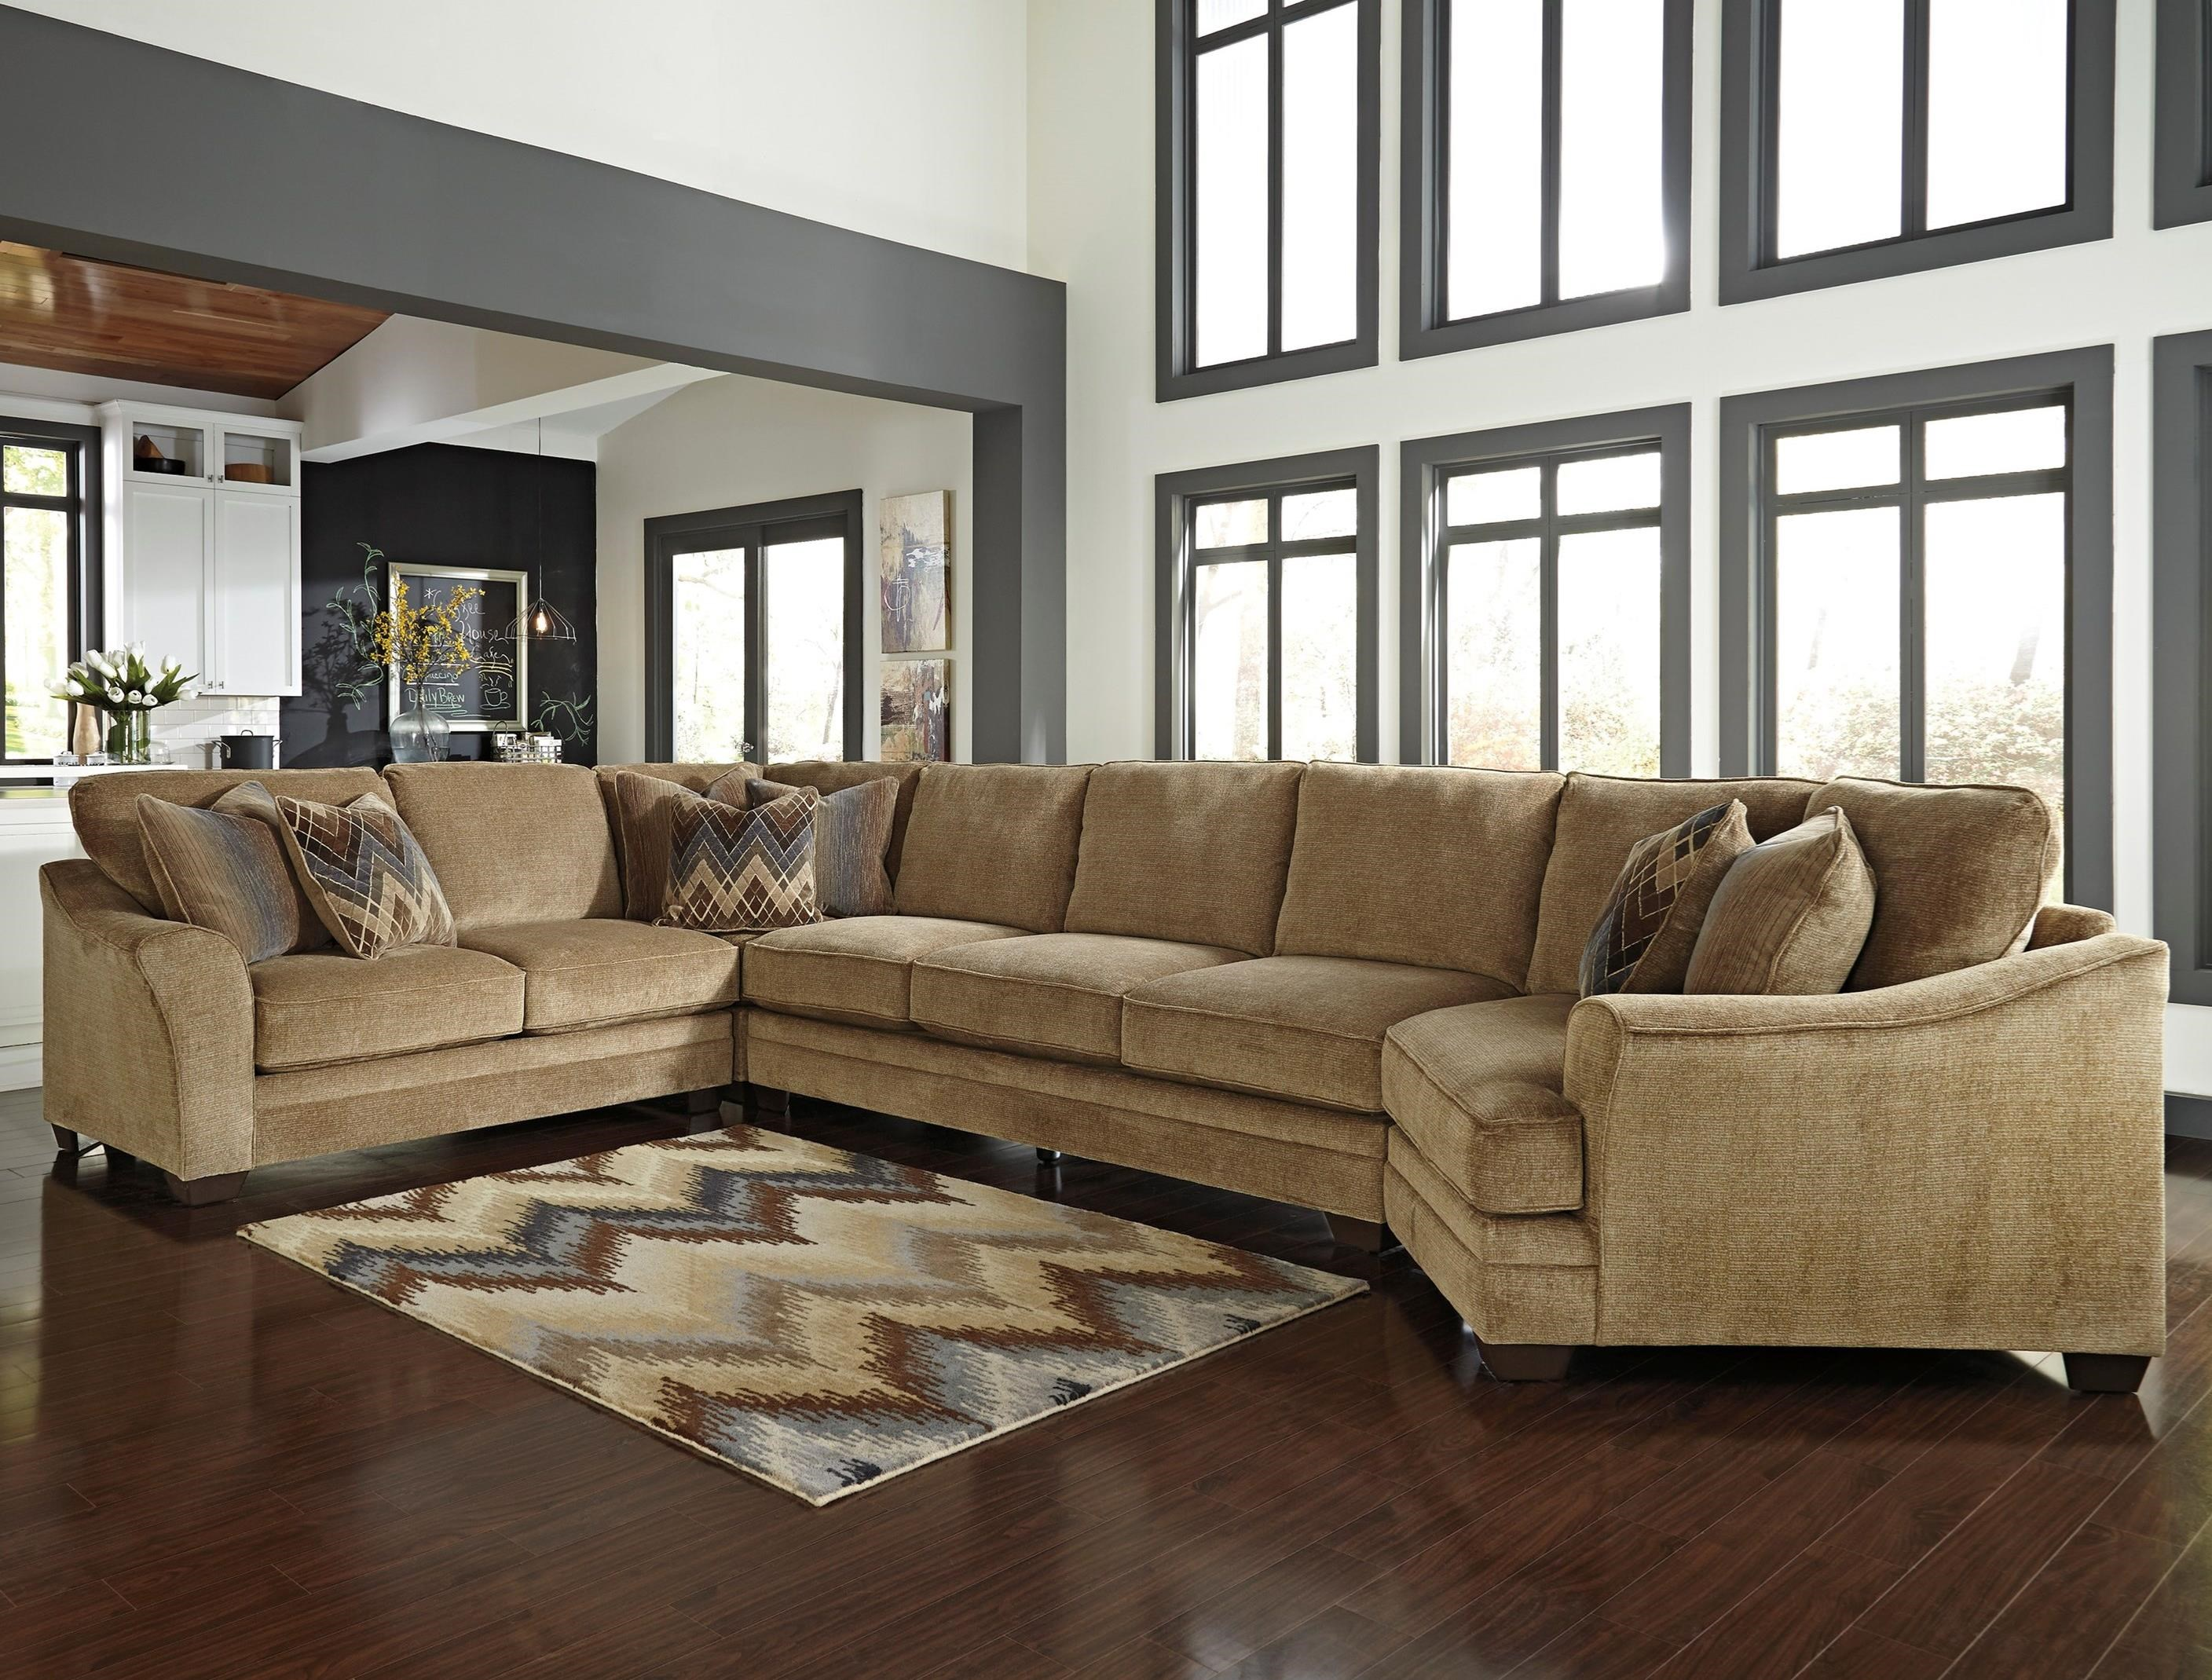 Benchcraft Lonsdale 4-Piece Sectional w/ Armless Sofa & Cuddler - Item Number: 9211155+77+99+75